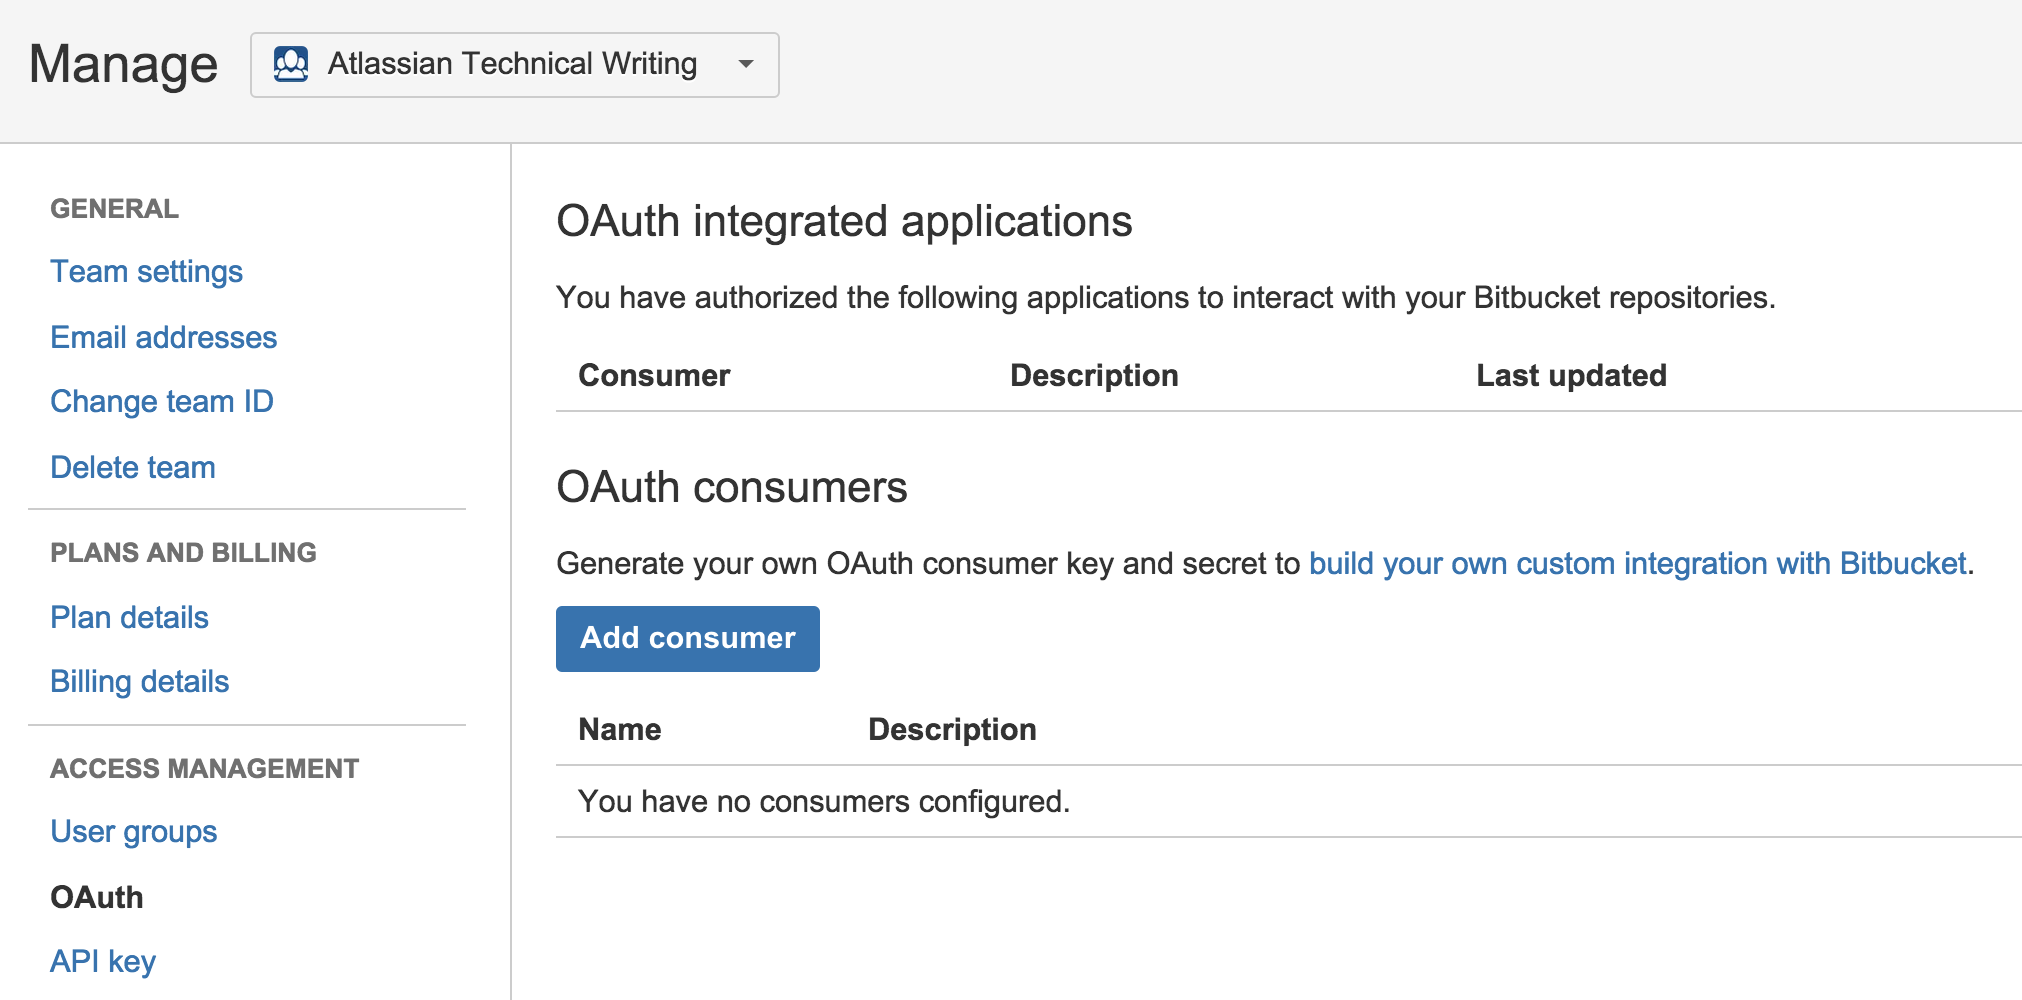 OAuth Integrated applications page.